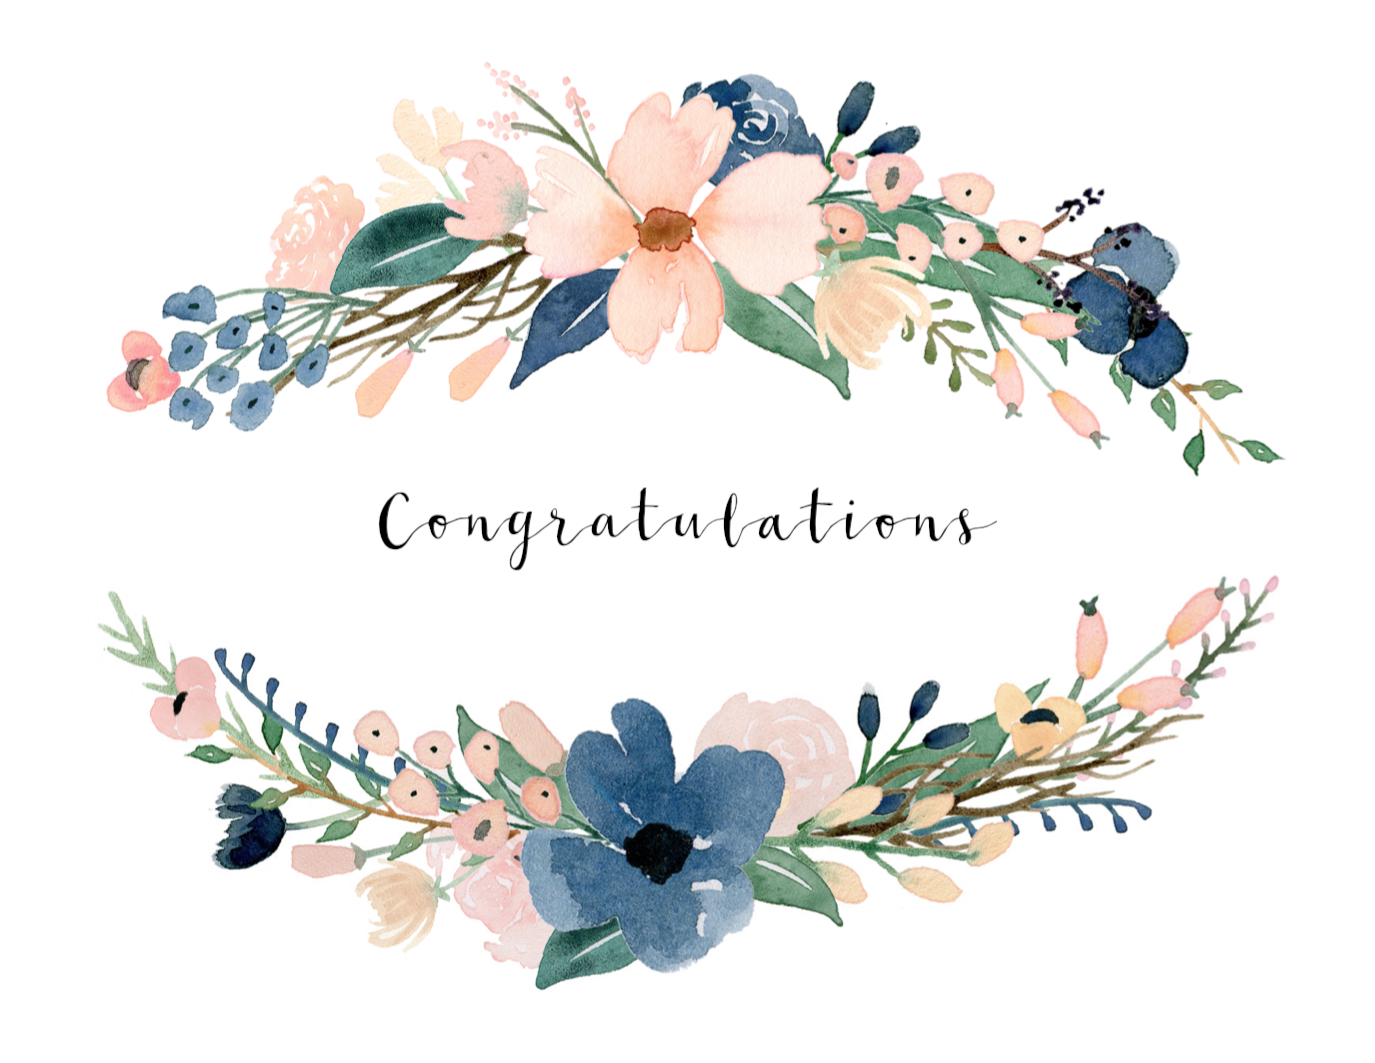 Congratulations card printable free printable greeting cards free printable congratulations card kristyandbryce Choice Image